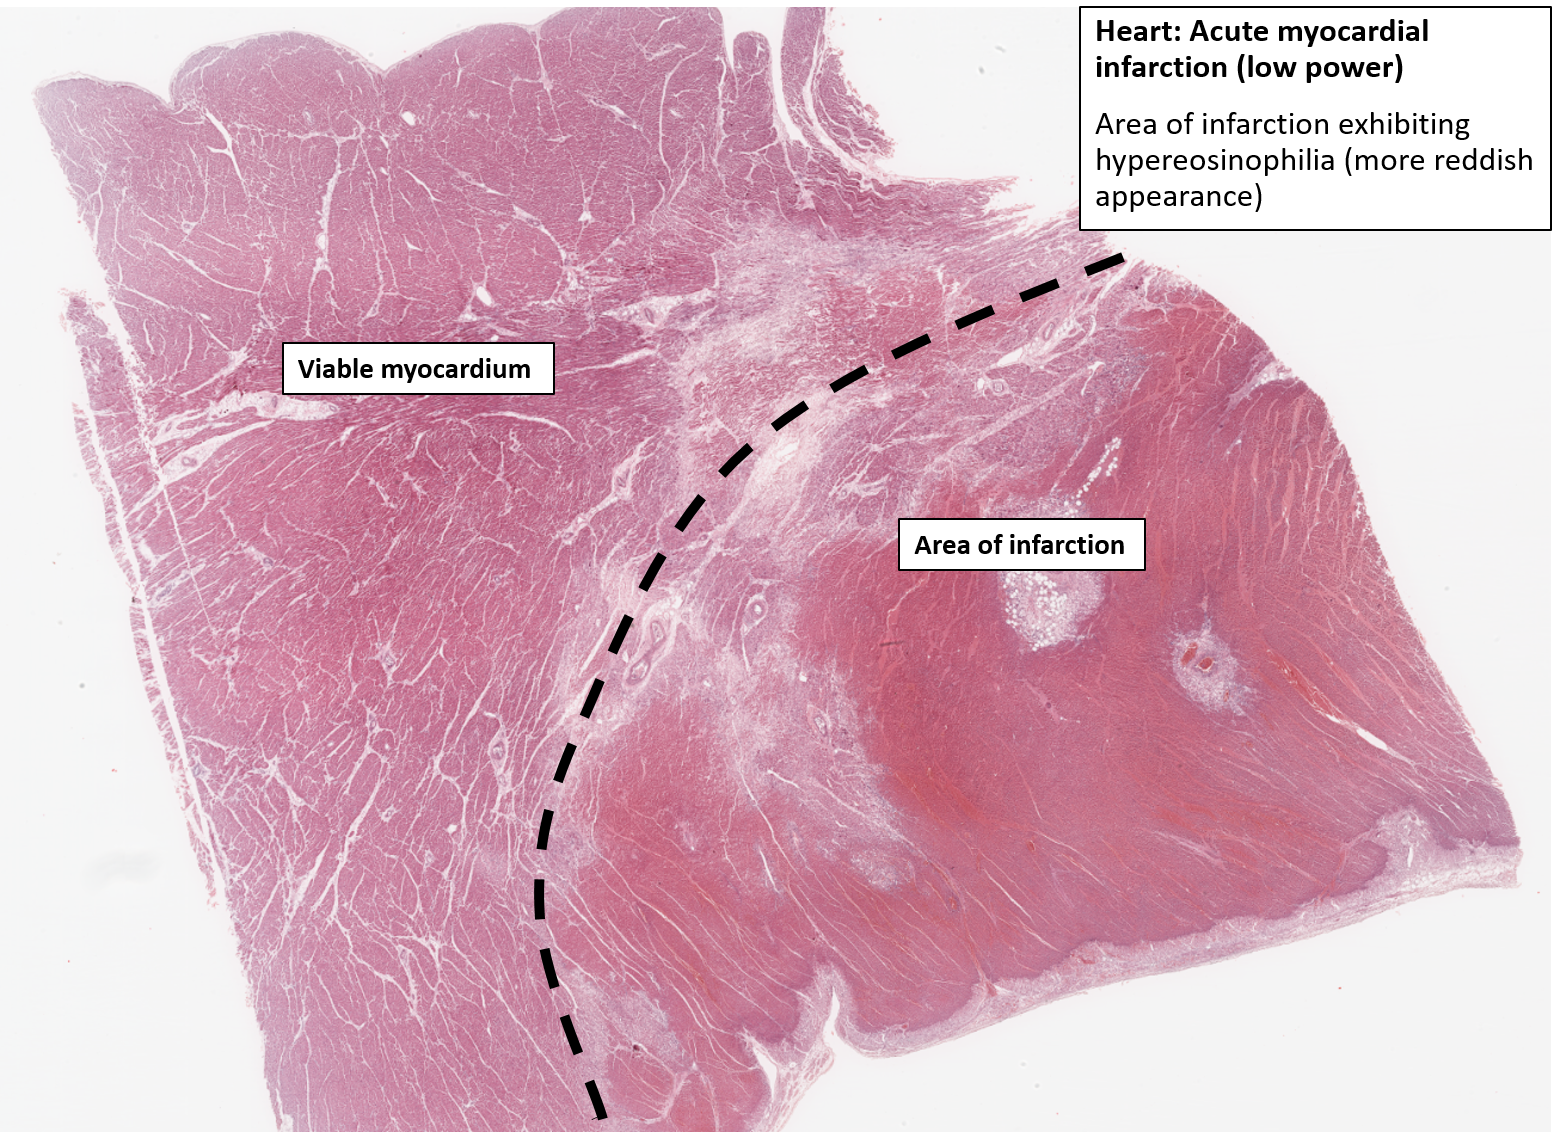 dating myocardial infarction histology Ischemic heart disease is caused by an imbalance between the myocardial blood flow and the metabolic demand of non-st-segment elevation myocardial infarction.